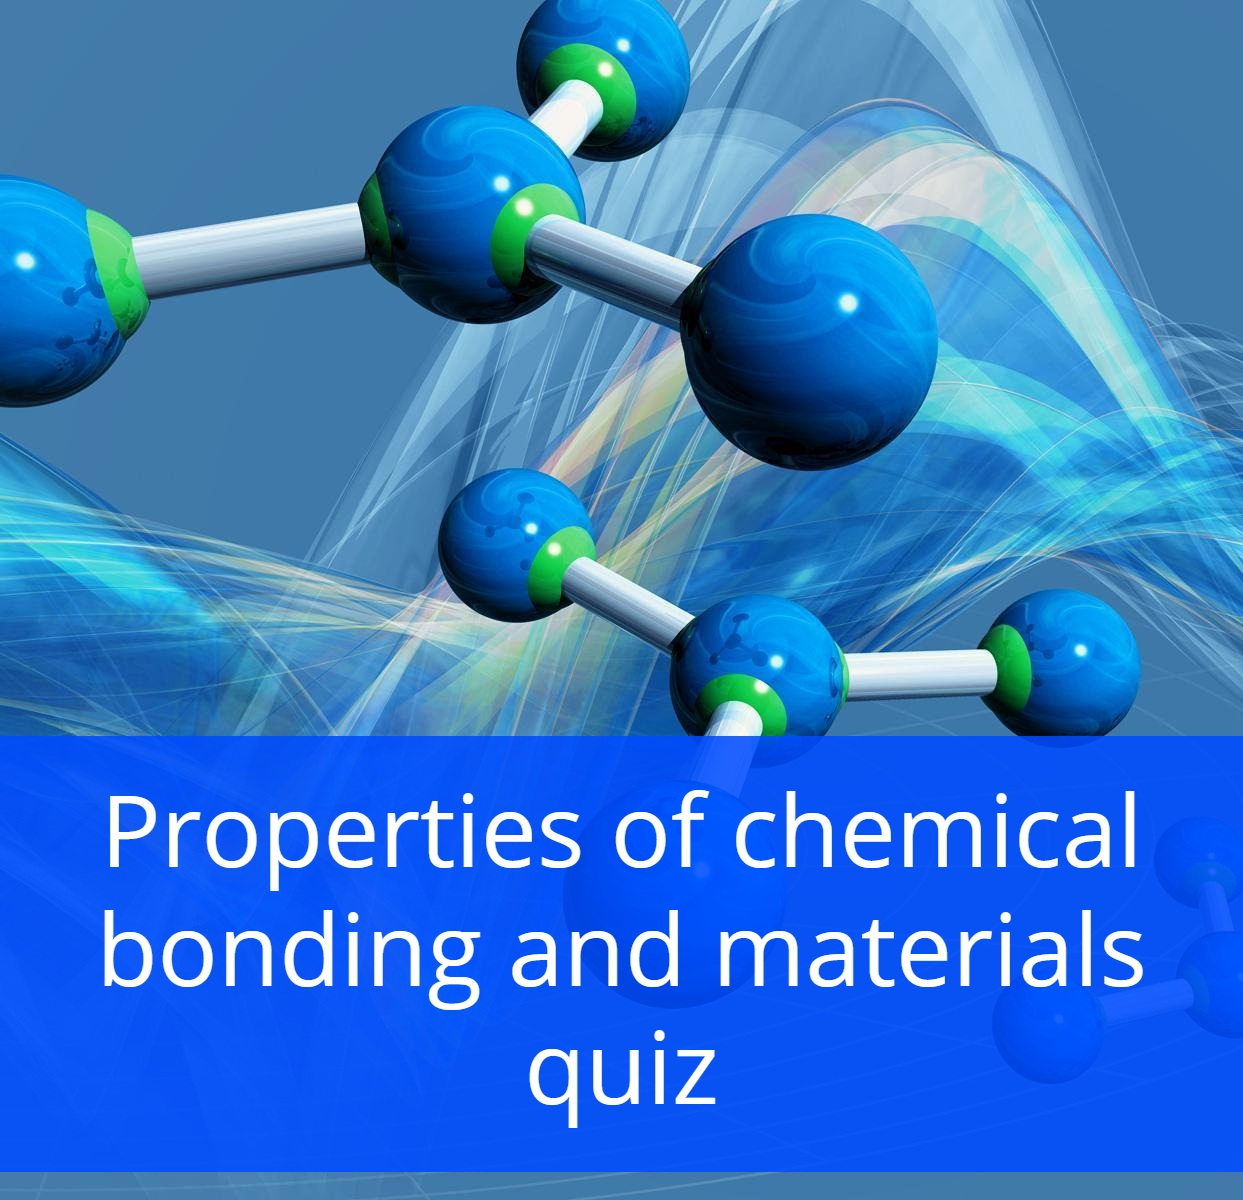 Properties of chemical bonding and materials quiz